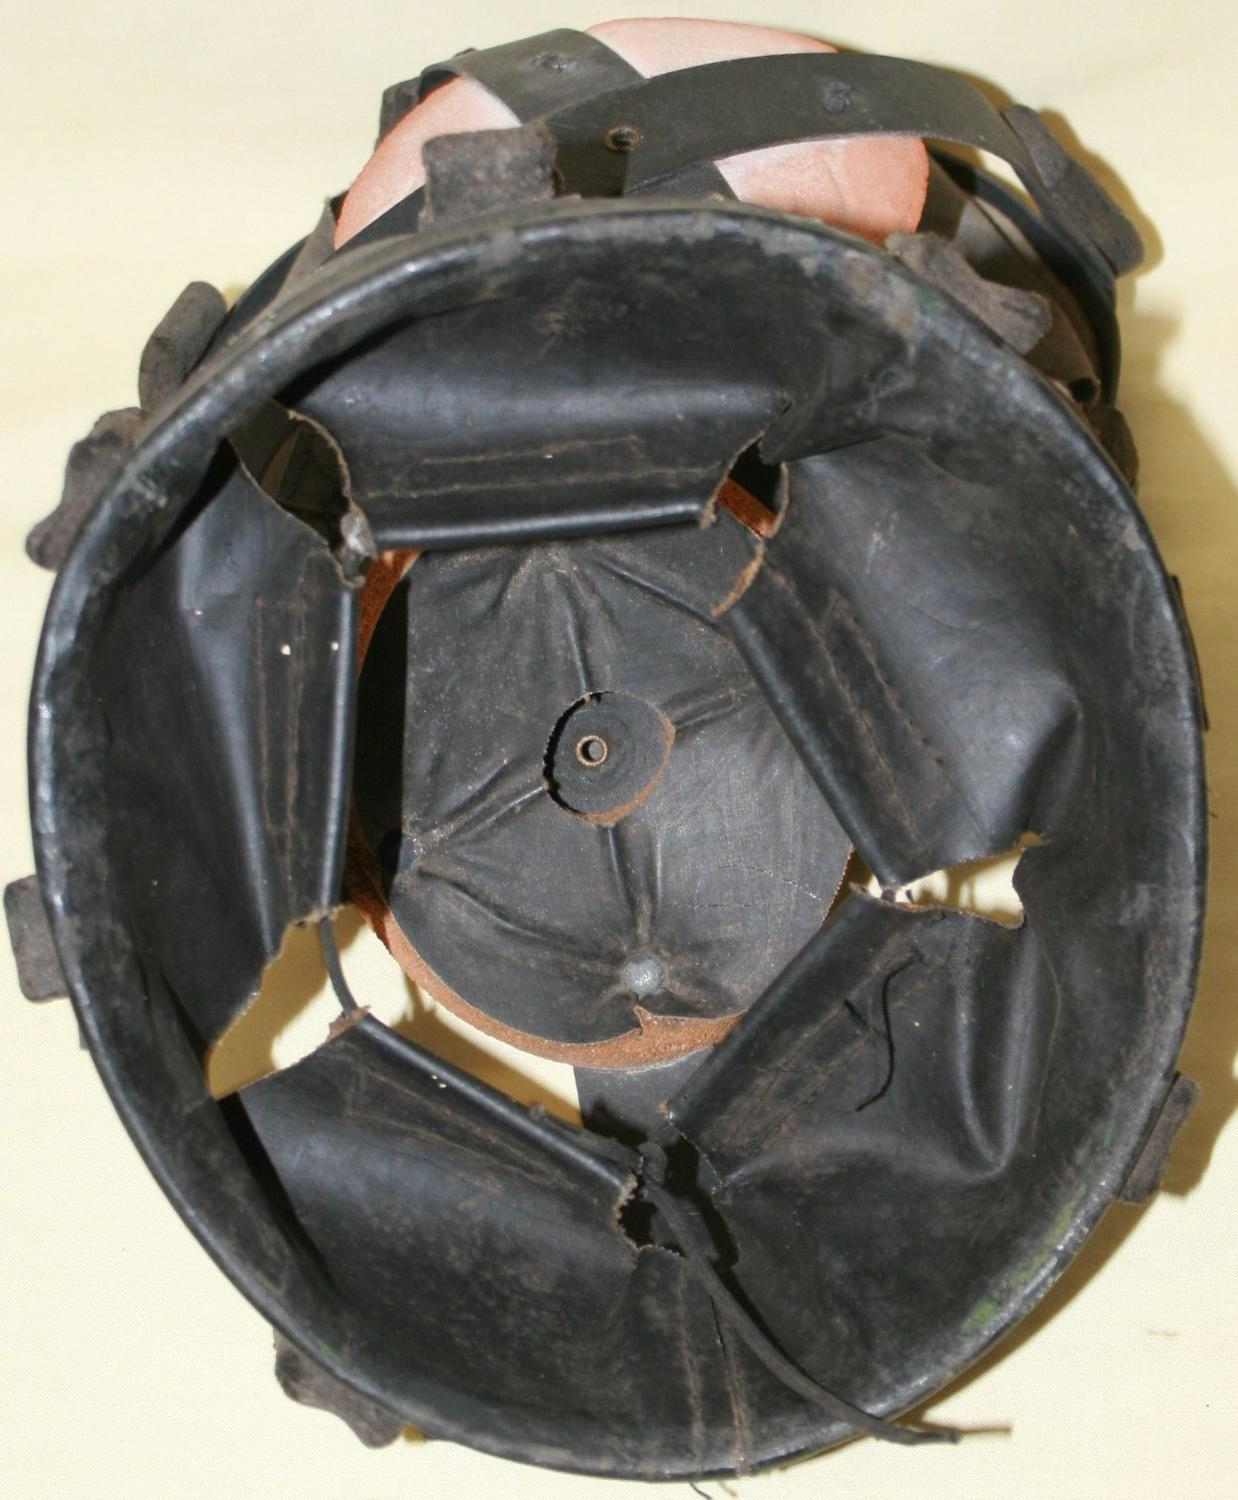 A MINT 1938 DATED HELMET LINER SIZE 7 EXAMPLE